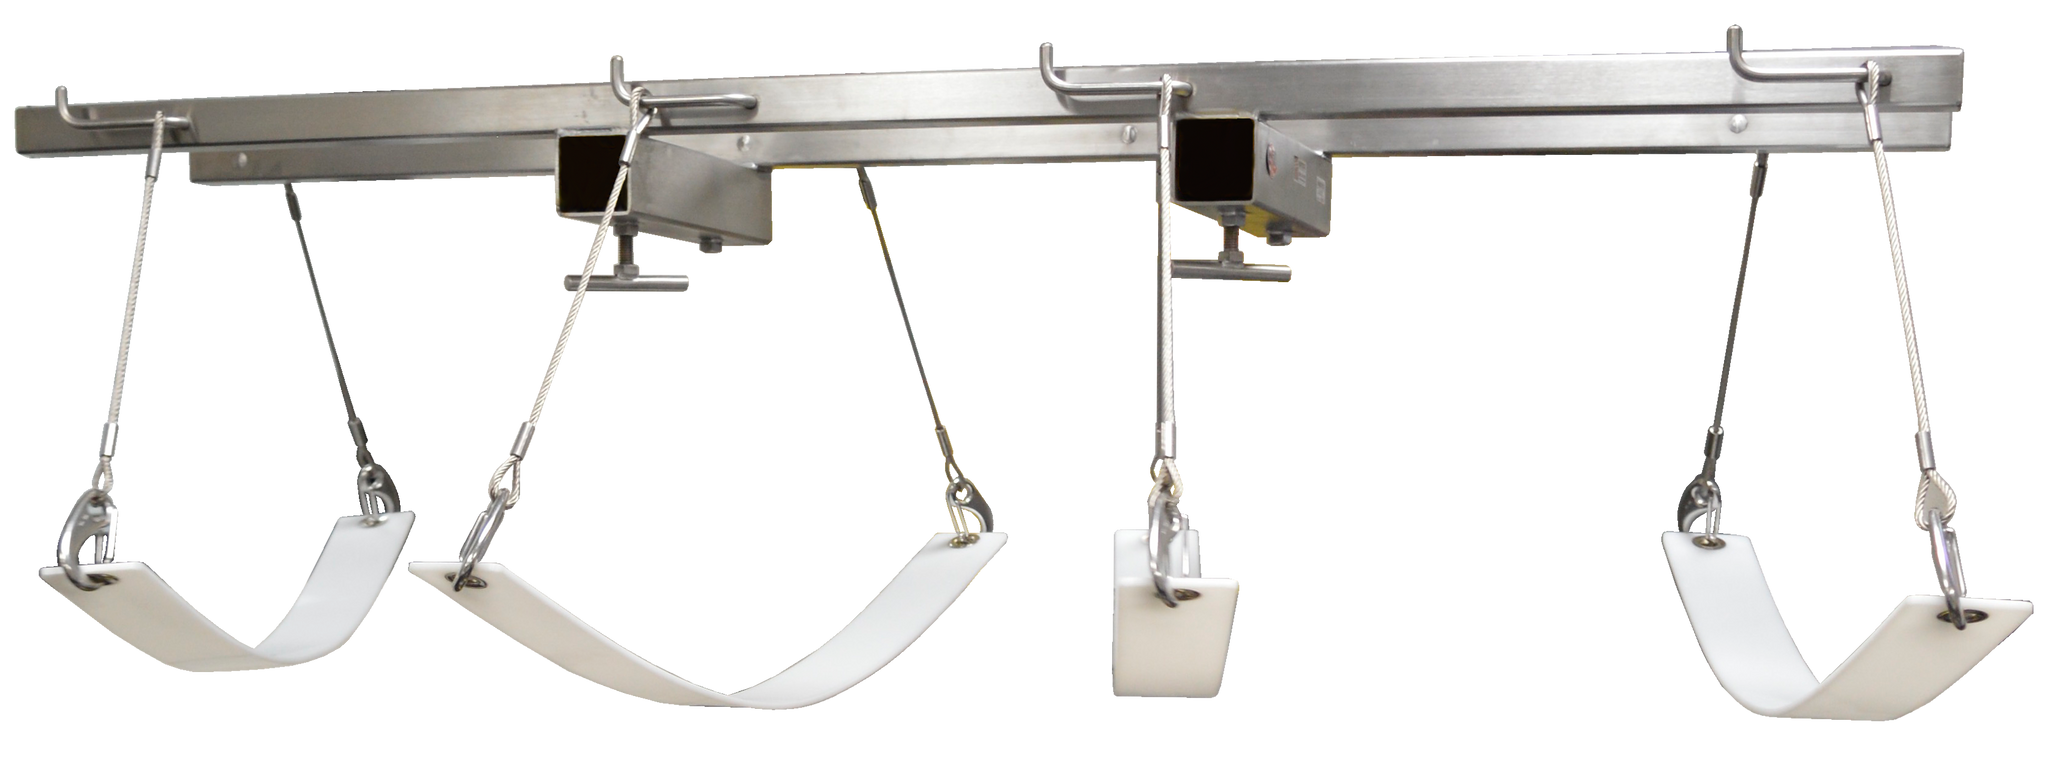 Adjustable Strap Lift Assembly with Rigid Body Strap